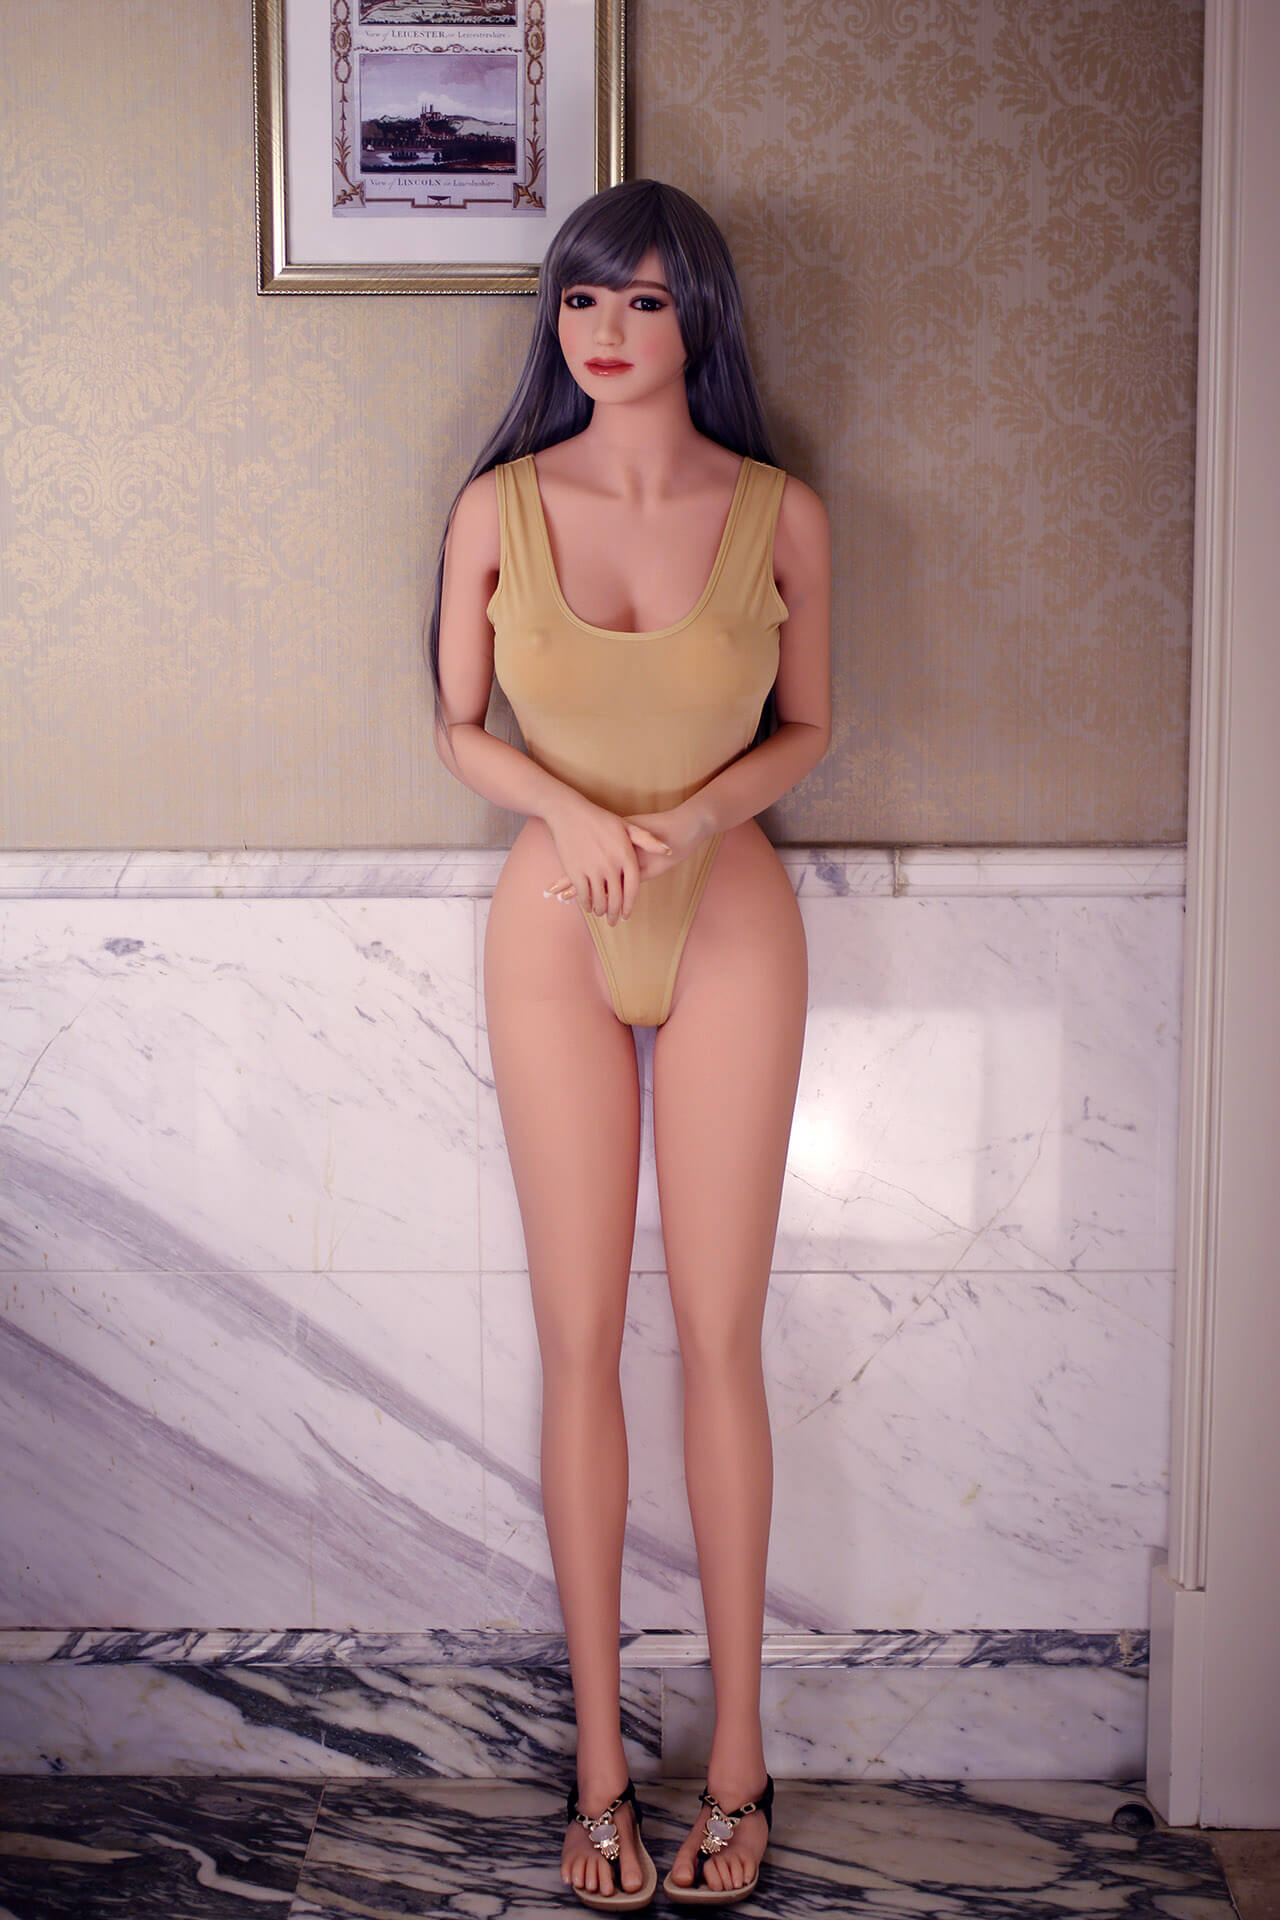 Kristin Realistic Sex Doll Like A Sweet Girlfriend- Cheapest Sex Dolls